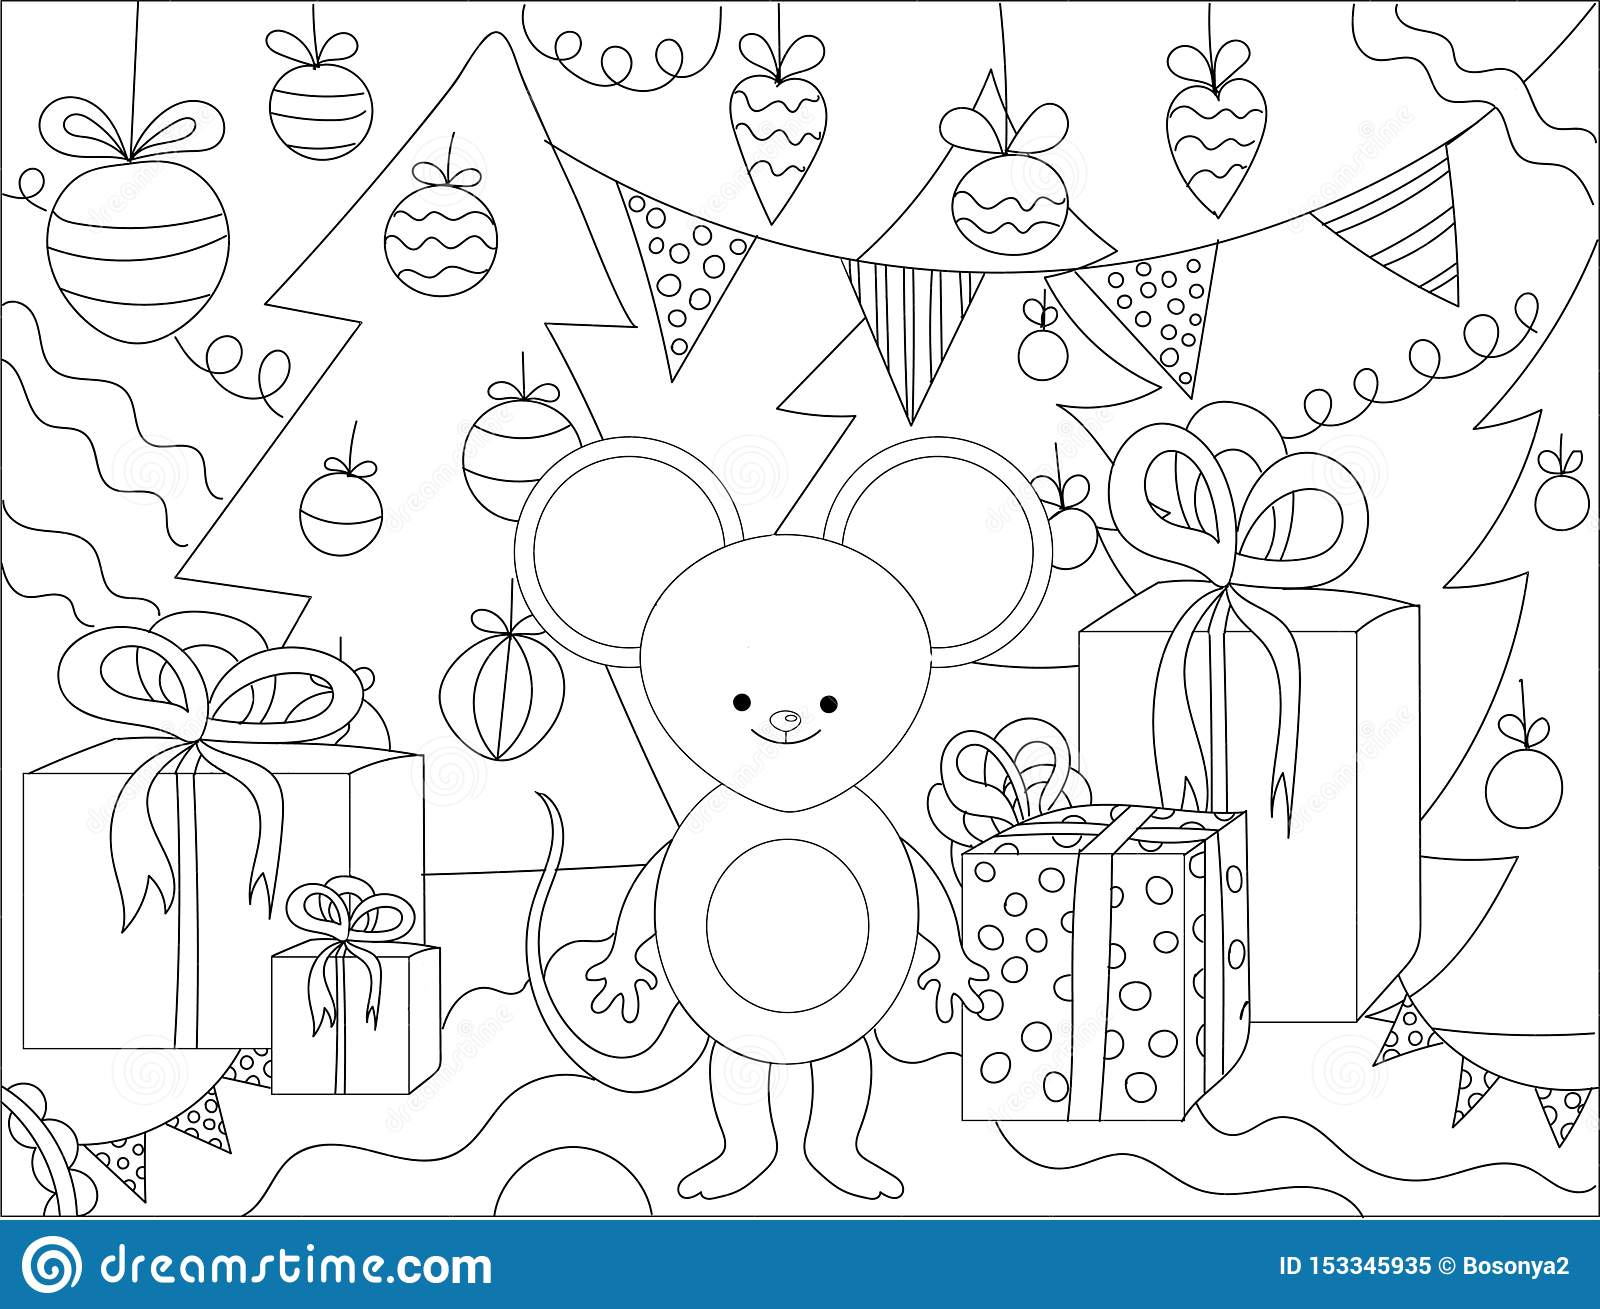 Spongebob and Squidward coloring pages for kids, printable free | 1309x1600